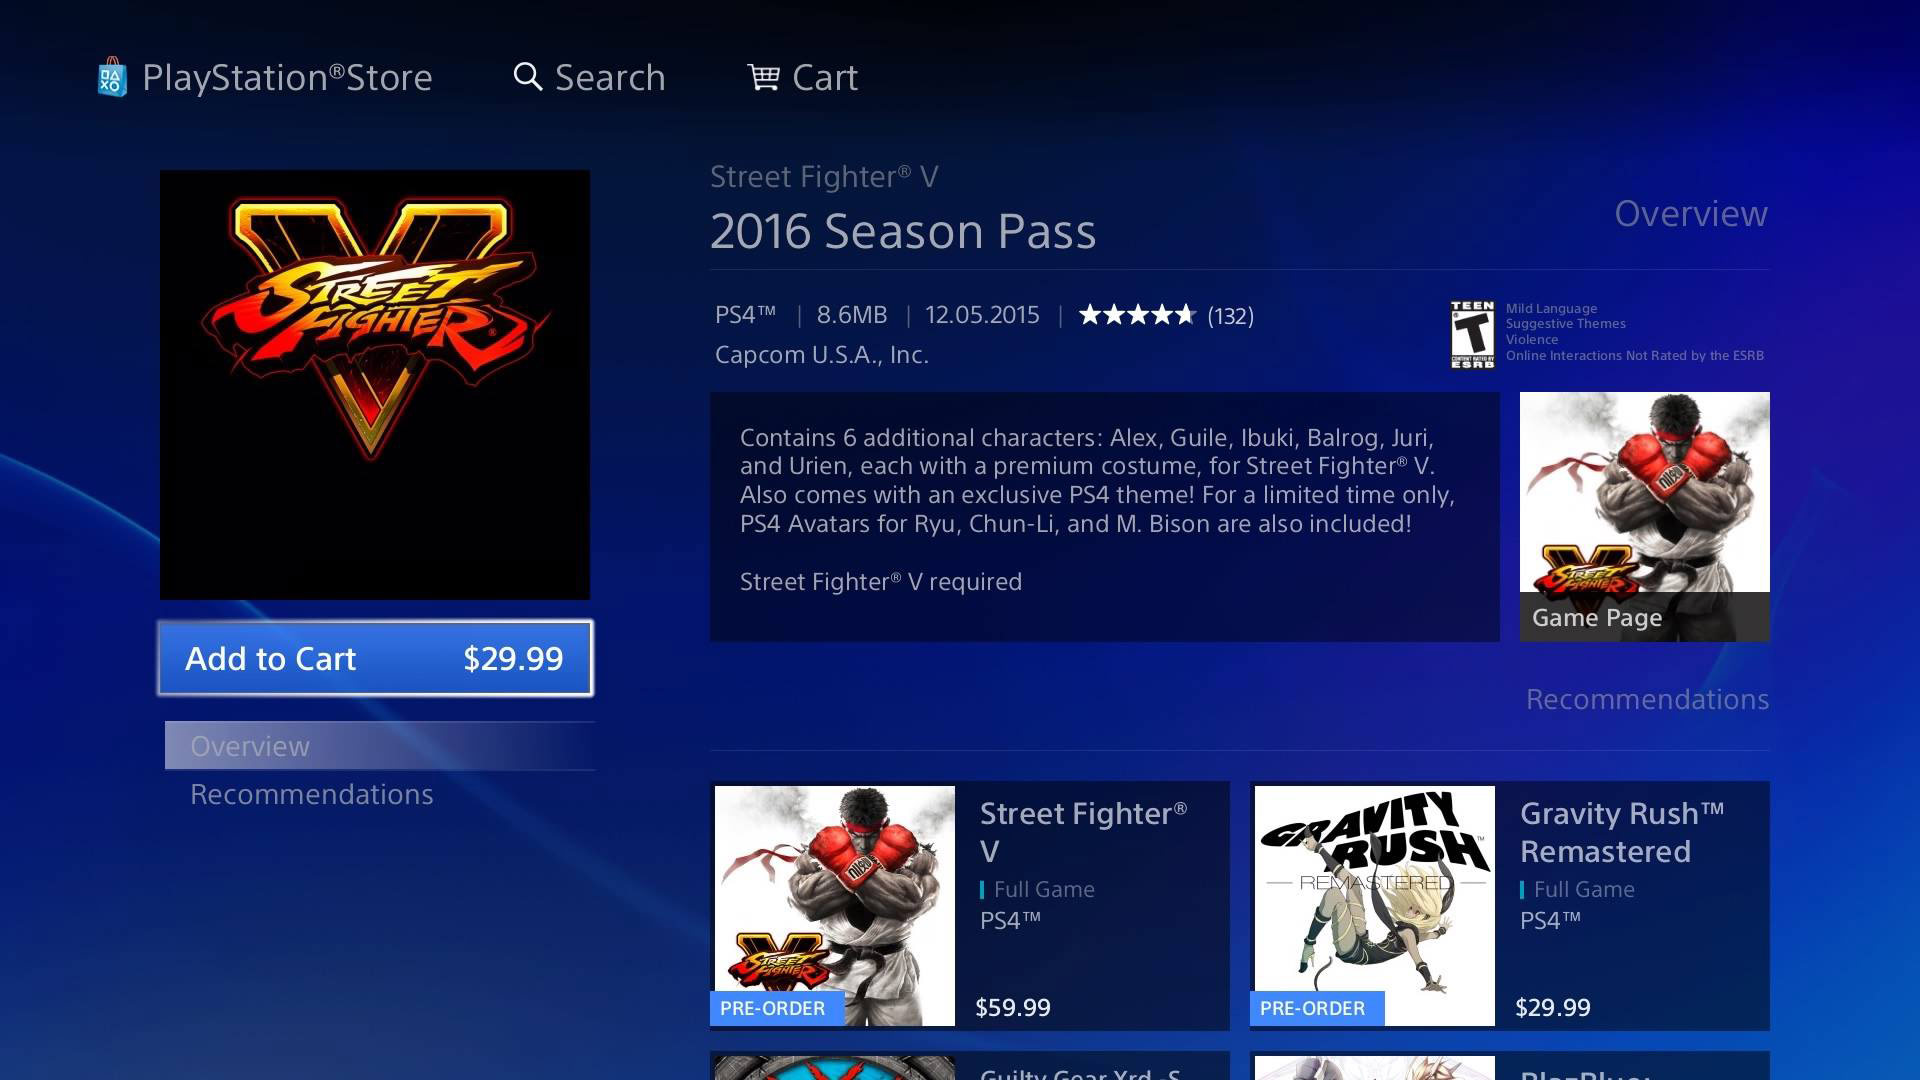 Street Fighter 5 season pass comes with premium costume for every DLC character